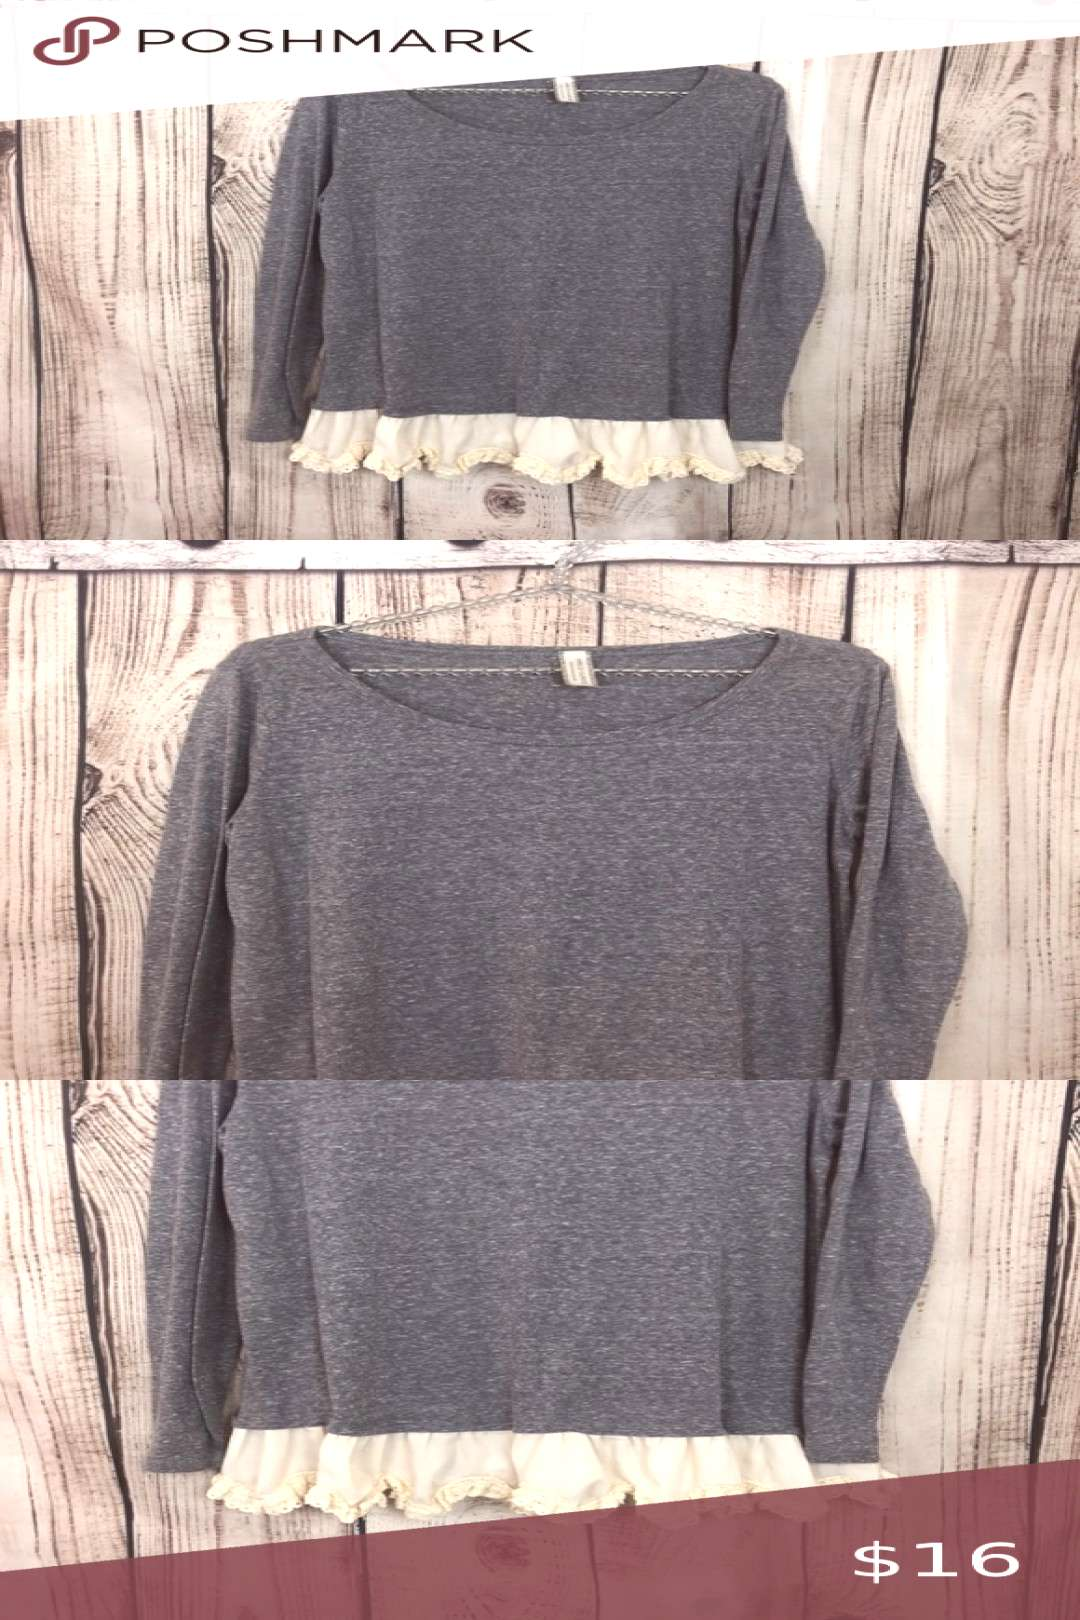 NWT Giddy Up Glamour Ruffle Trim Tunic Top Medium Giddy Up Glamour top Medium Gray with white ruffl